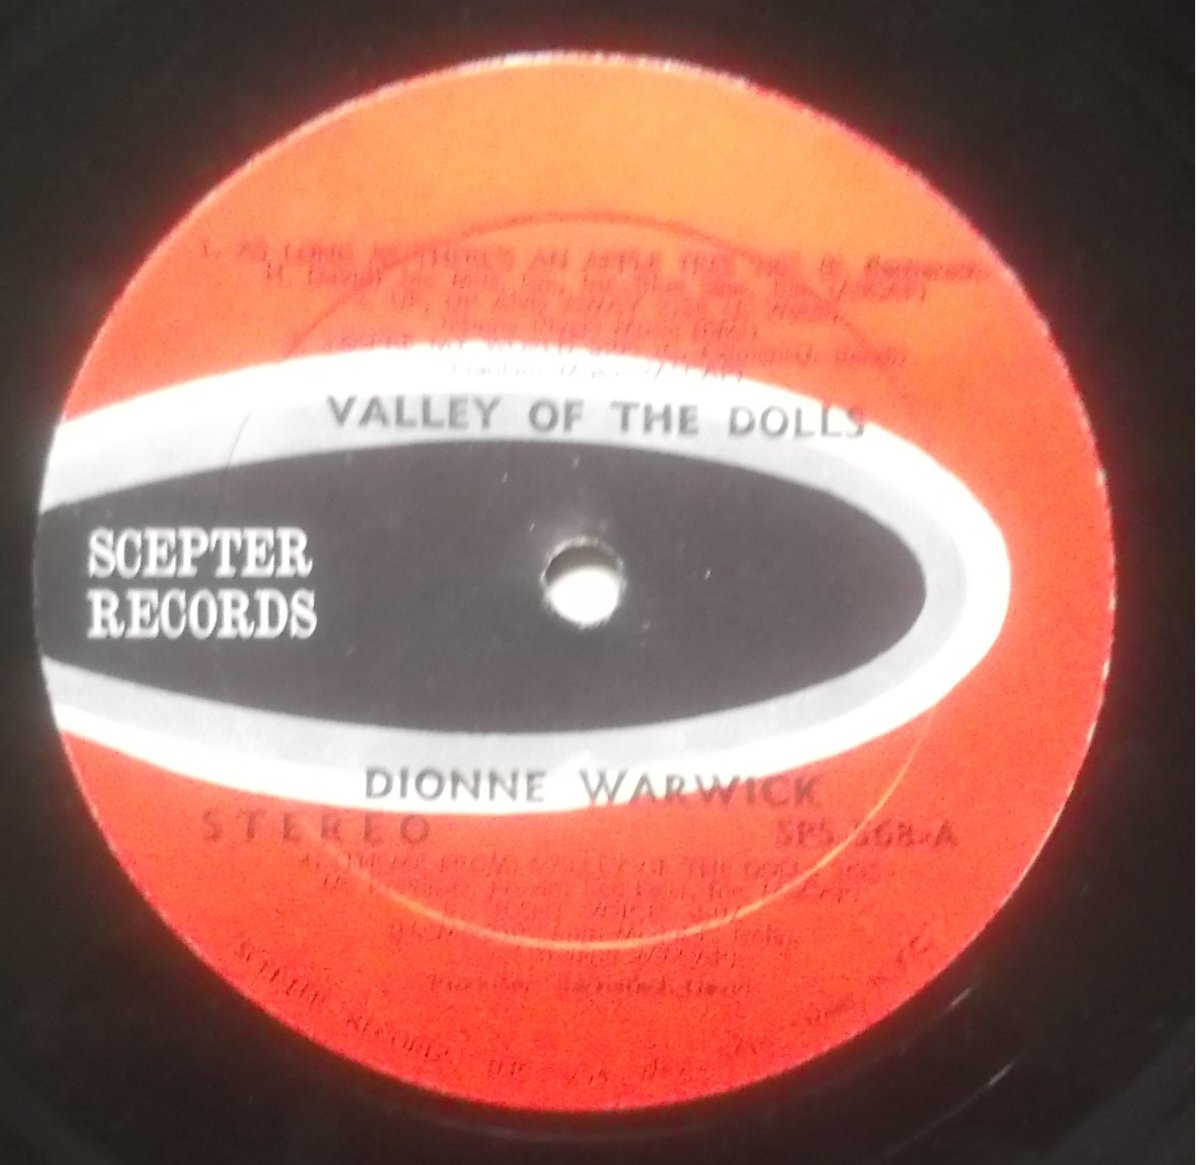 Dionne Warwick – Valley Of The Dolls